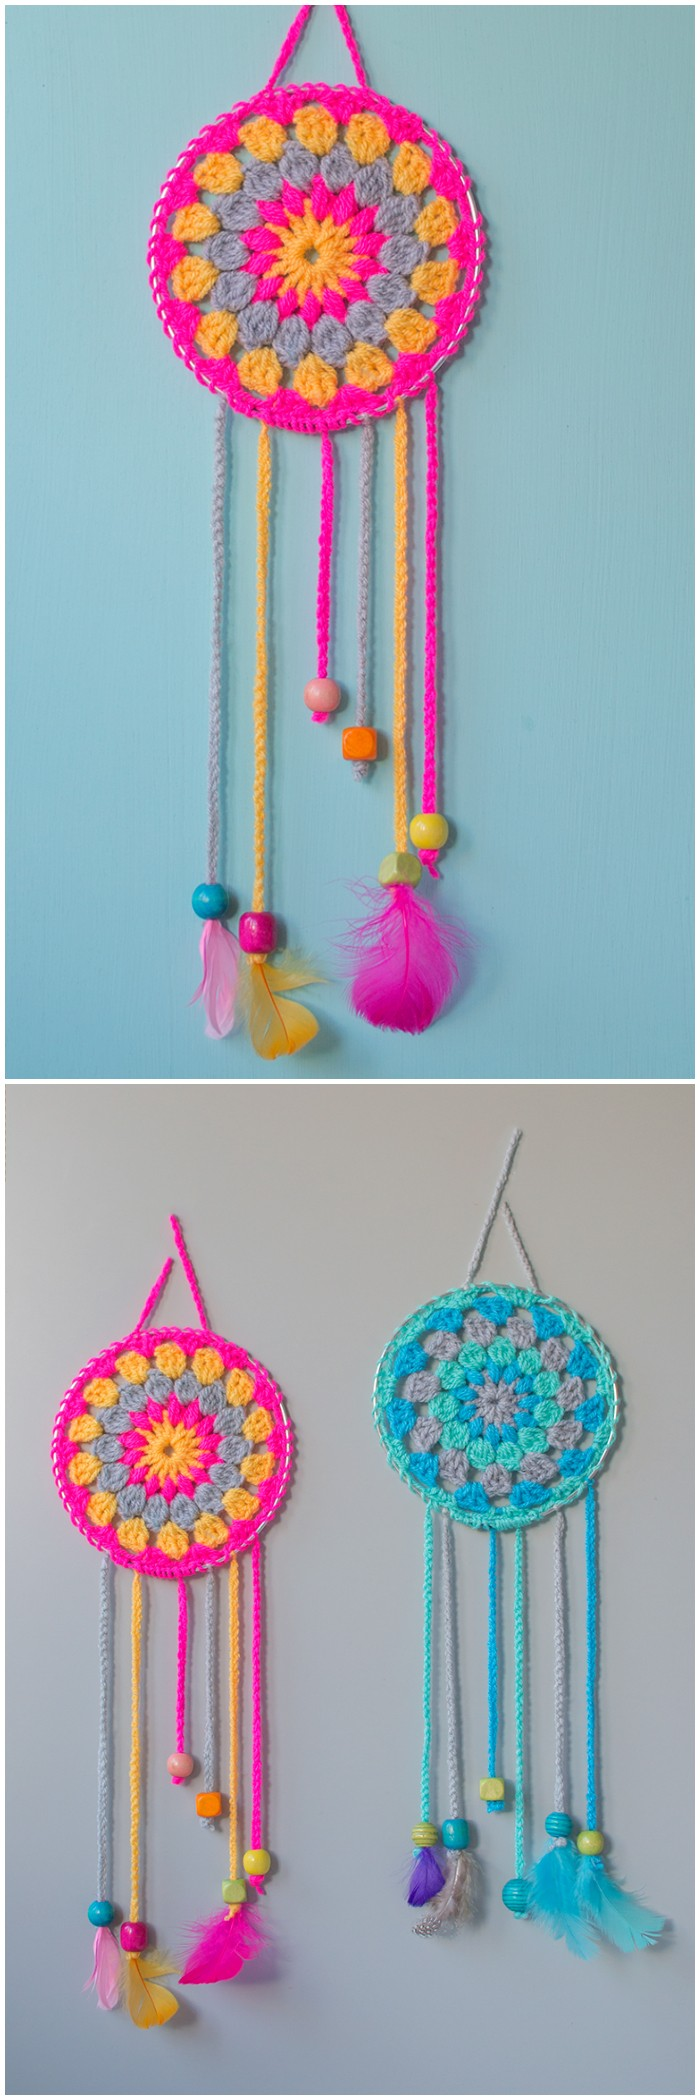 Crochet Dream Catcher - crochet home decor